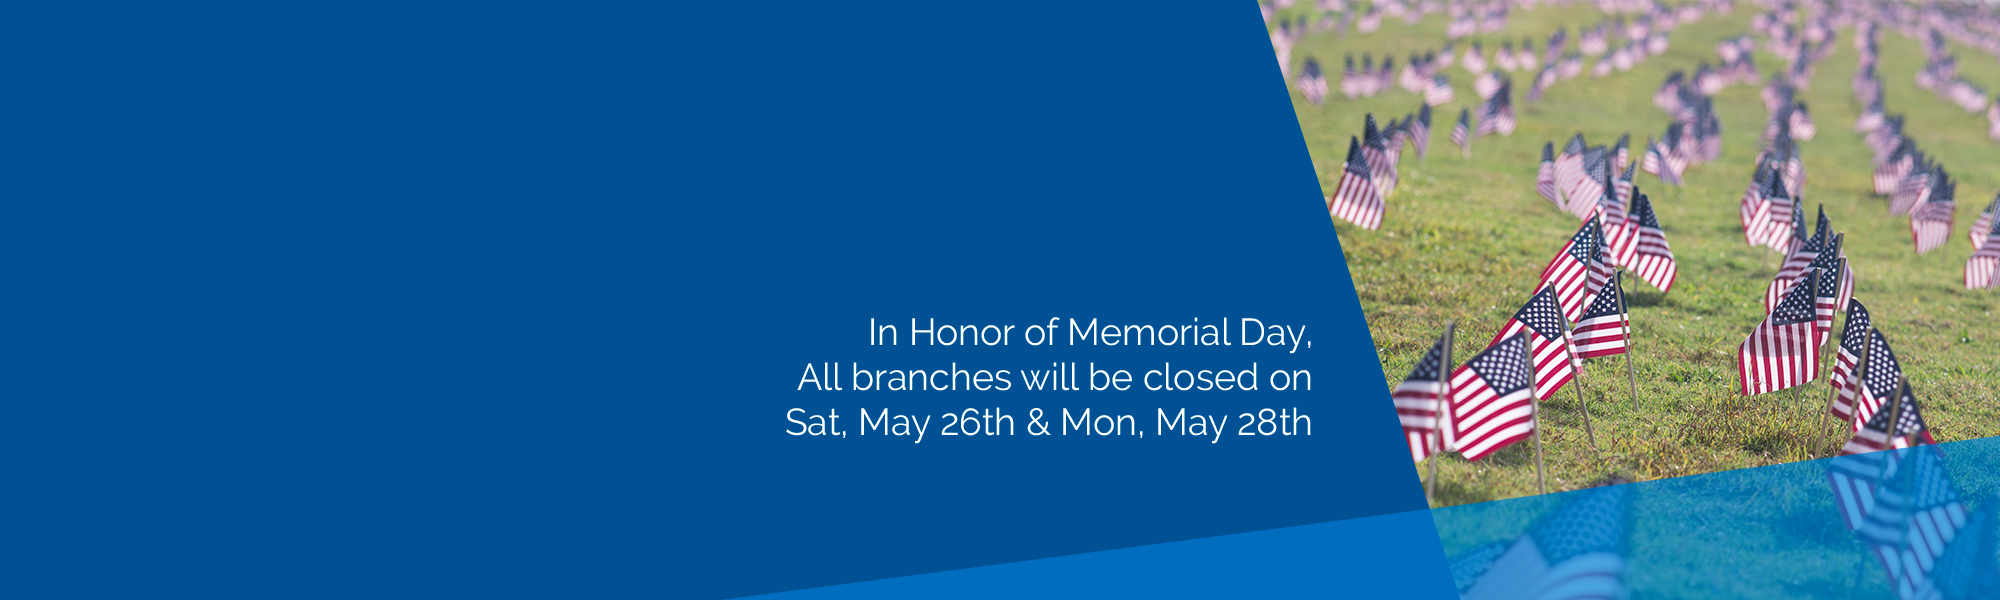 Branches closed Sat and Mon for Memorial Day